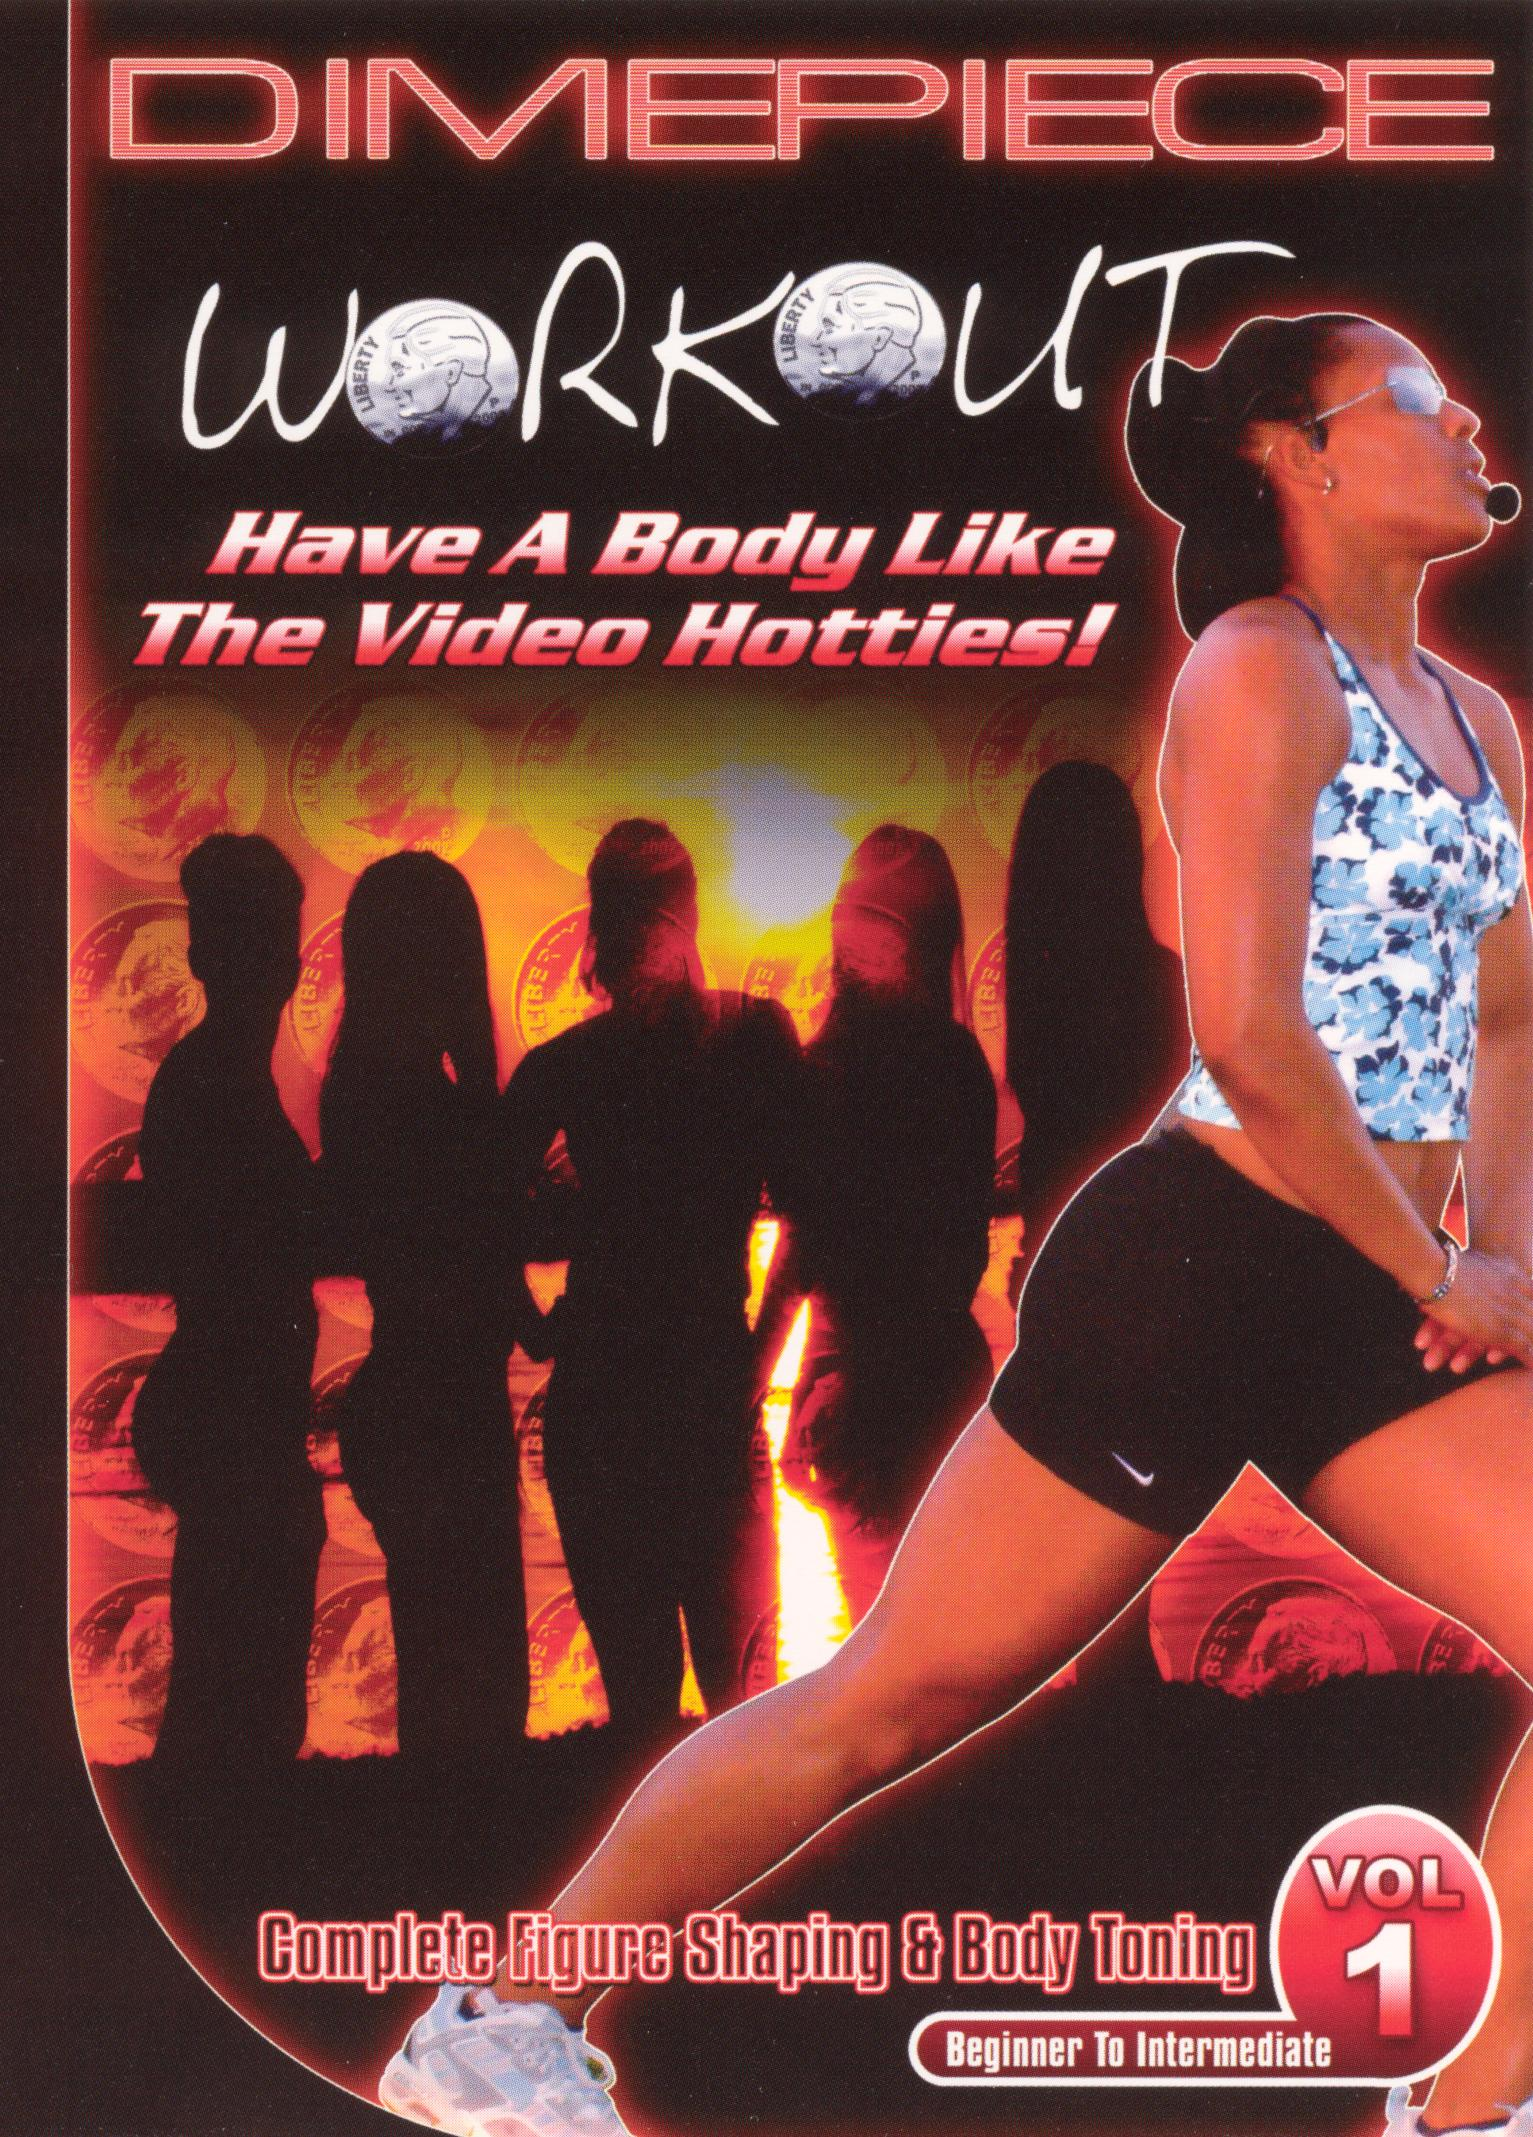 Dimepiece Workout: Complete Figure Shaping and Body Toning, Vol. 1